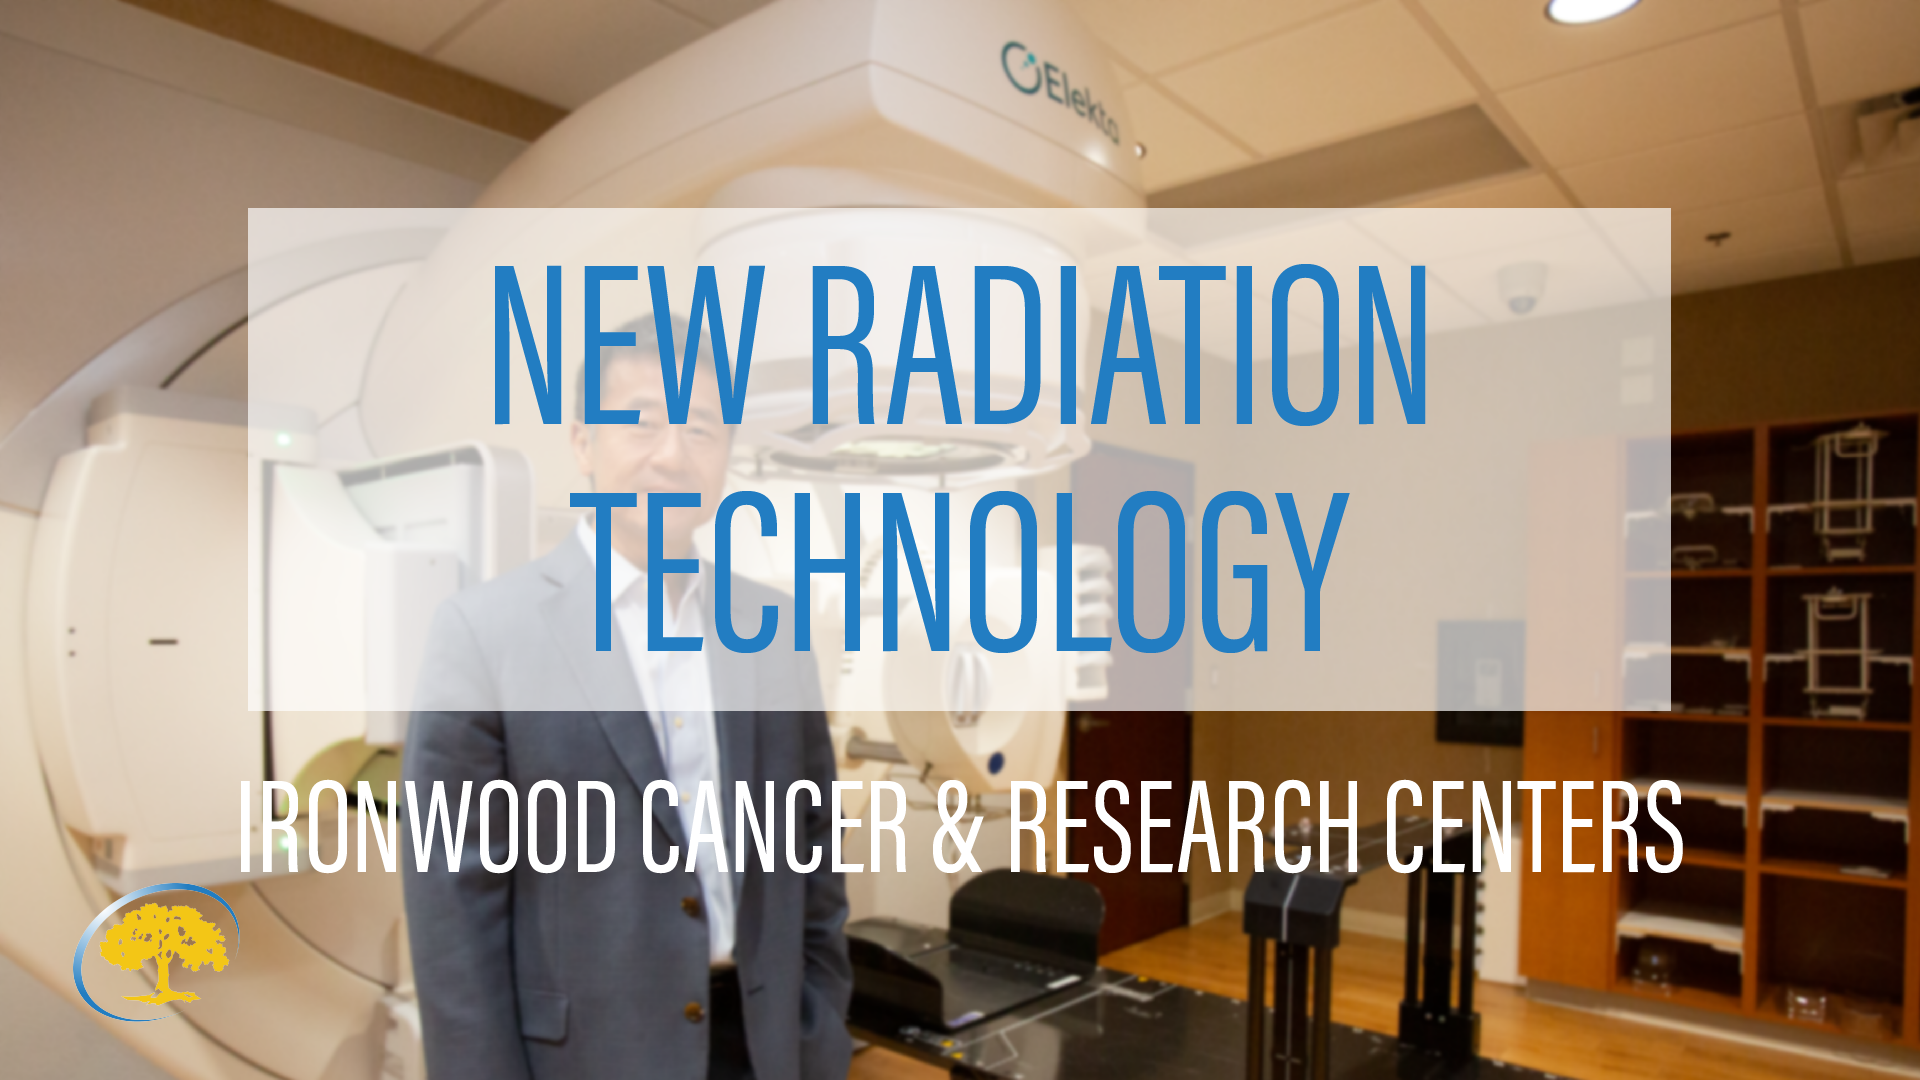 Revolutionary Radiation Technology Ironwood Cancer & Research Centers